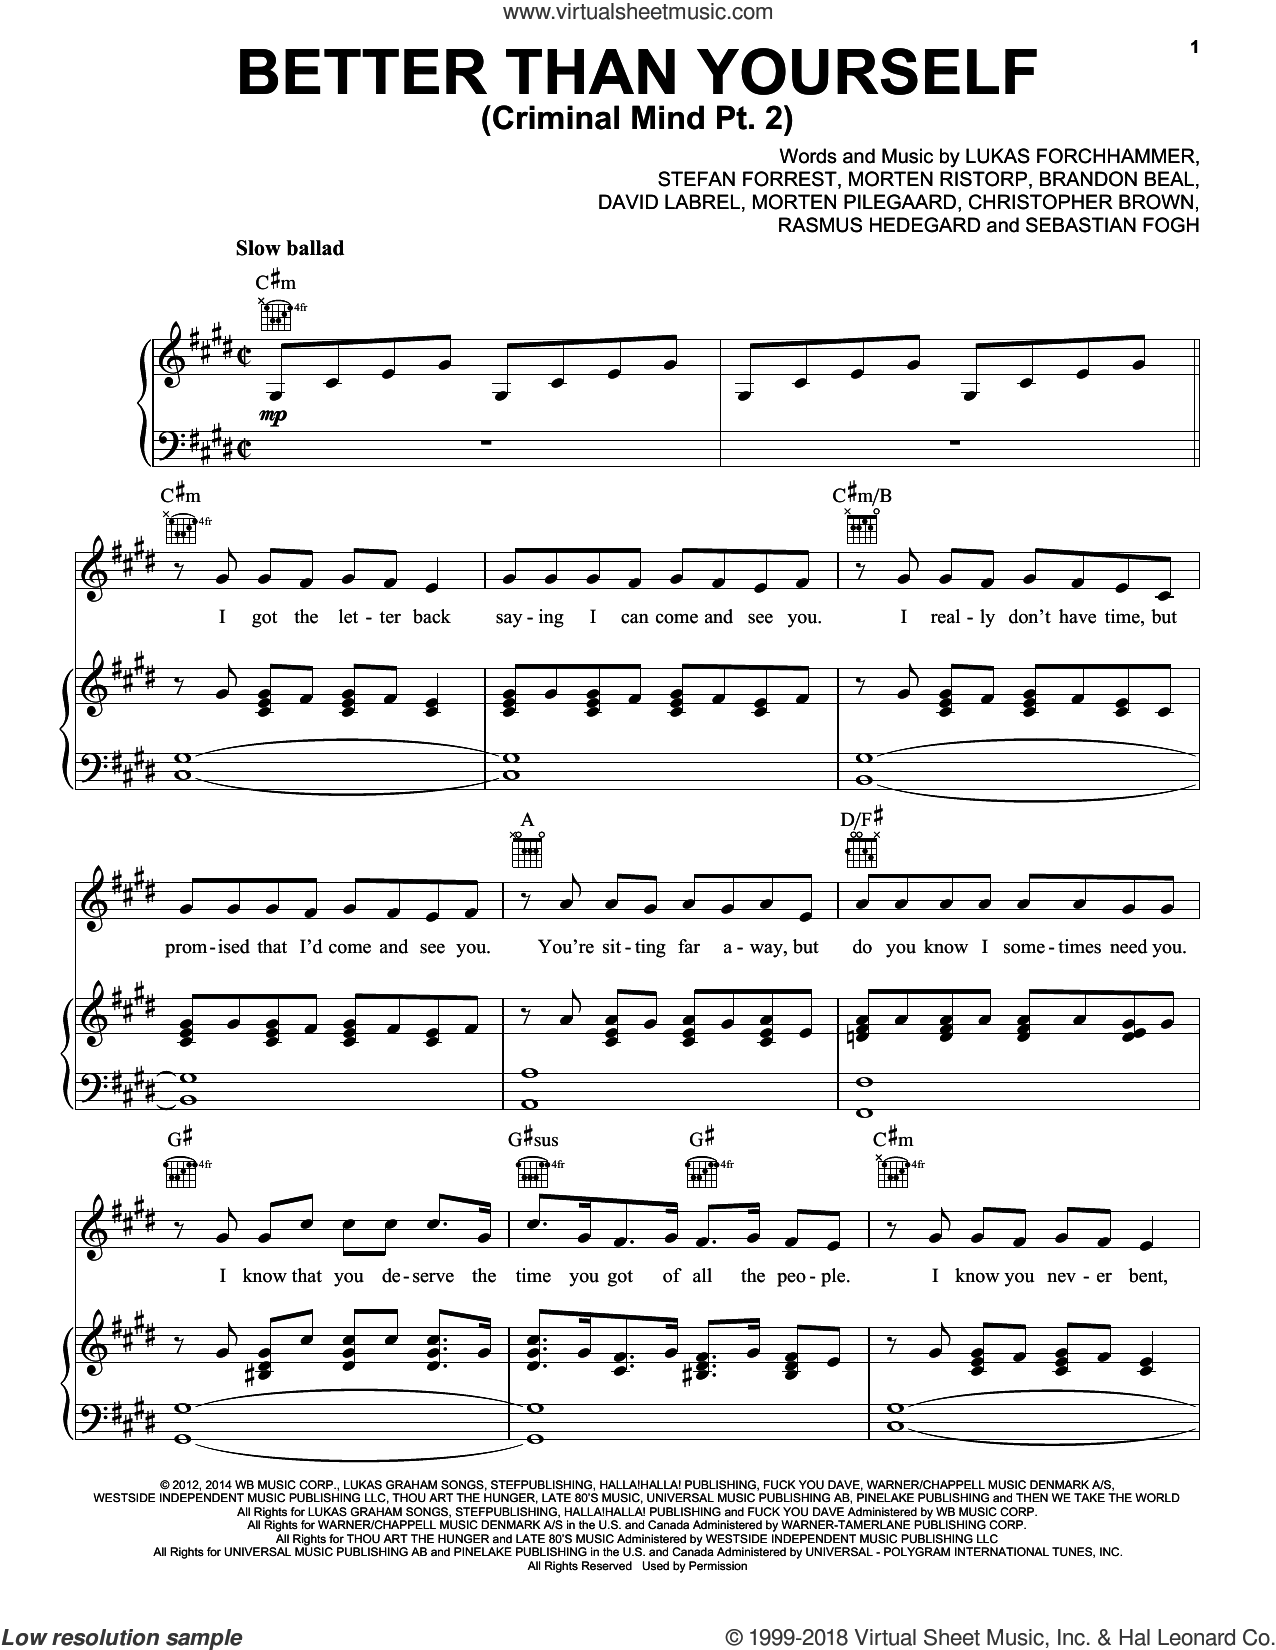 Better Than Yourself (Criminal Mind Part 2) sheet music for voice, piano or guitar by Lukas Graham, Brandon Beal, Chris Brown, David Labrel, Lukas Forchhammer, Morten Pilegaard, Morten Ristorp, Rasmus Hedegard, Sebastian Fogh and Stefan Forrest, intermediate skill level